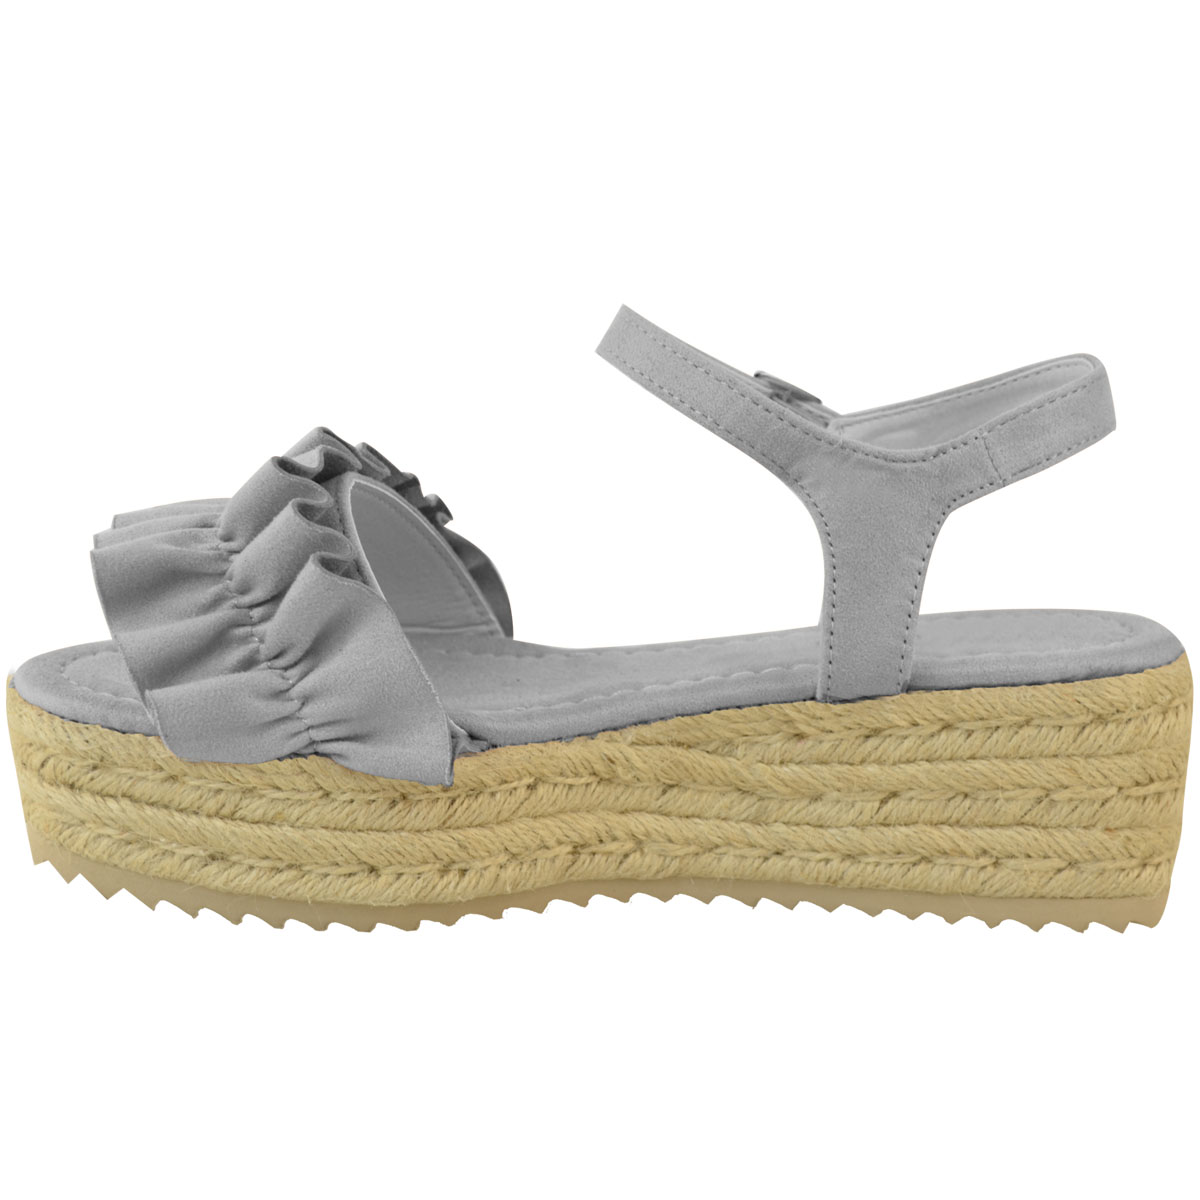 5109500a18b6 Womens Ladies Flatforms Wedge Sandals Frilly Summer Platforms Shoes ...